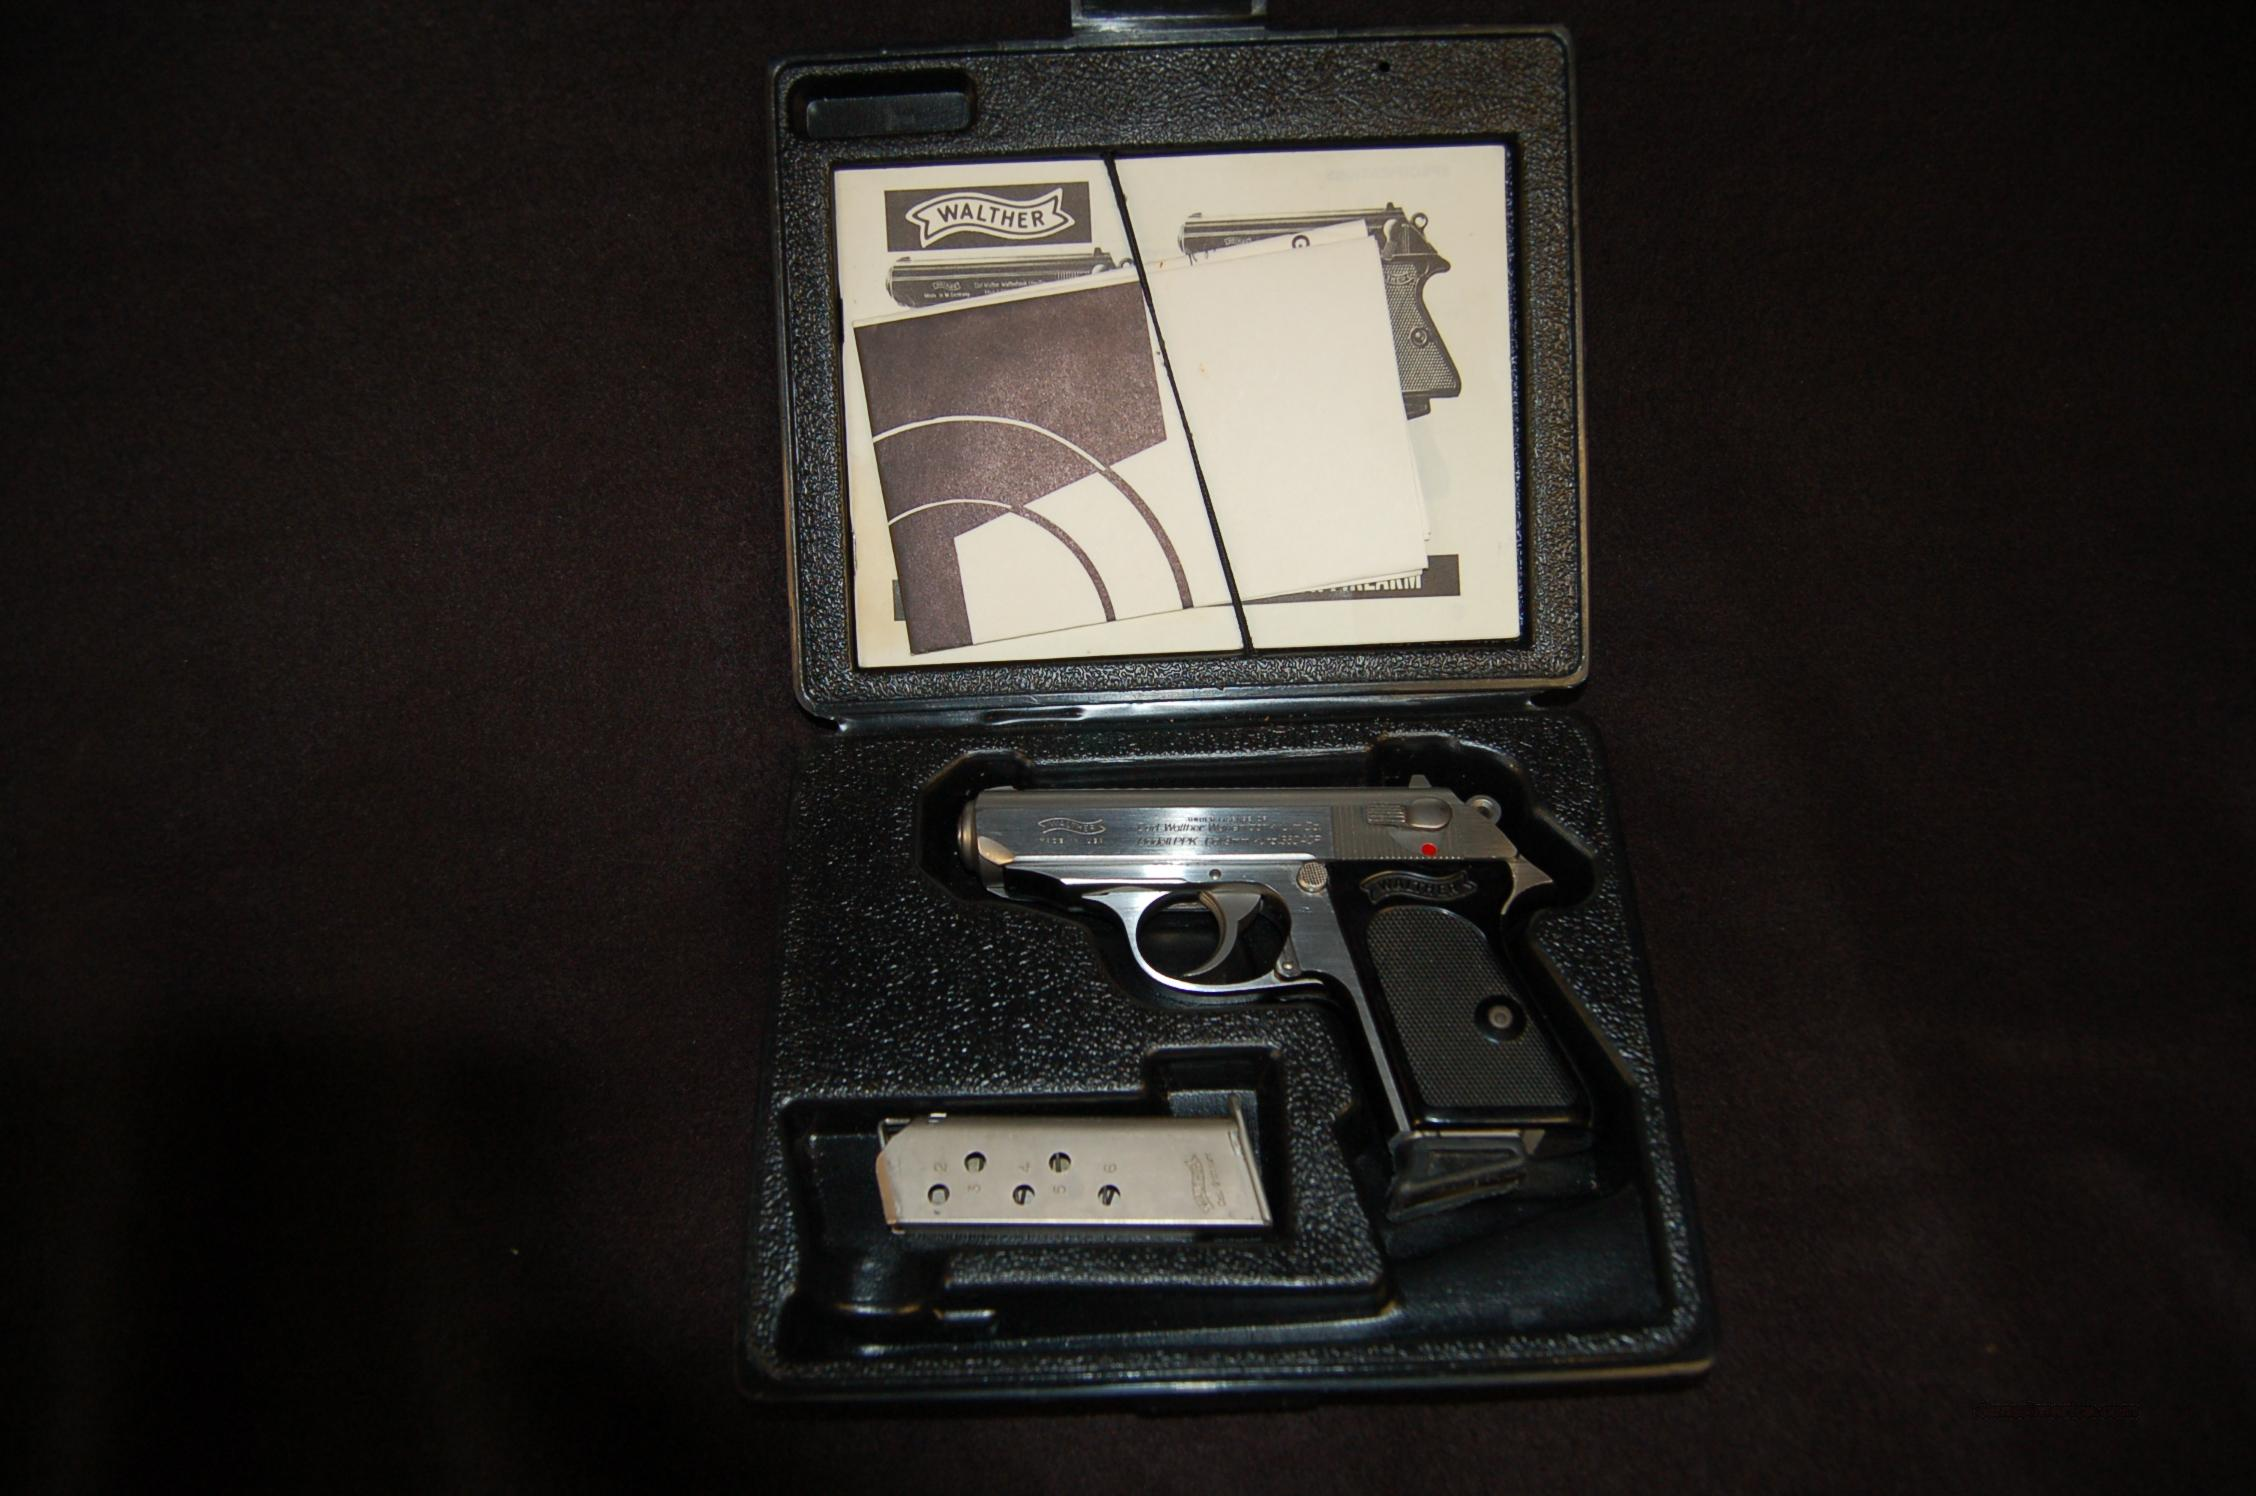 Walther Interarms US made PPK Stainless .380  Guns > Pistols > Walther Pistols > Post WWII > PPK Series